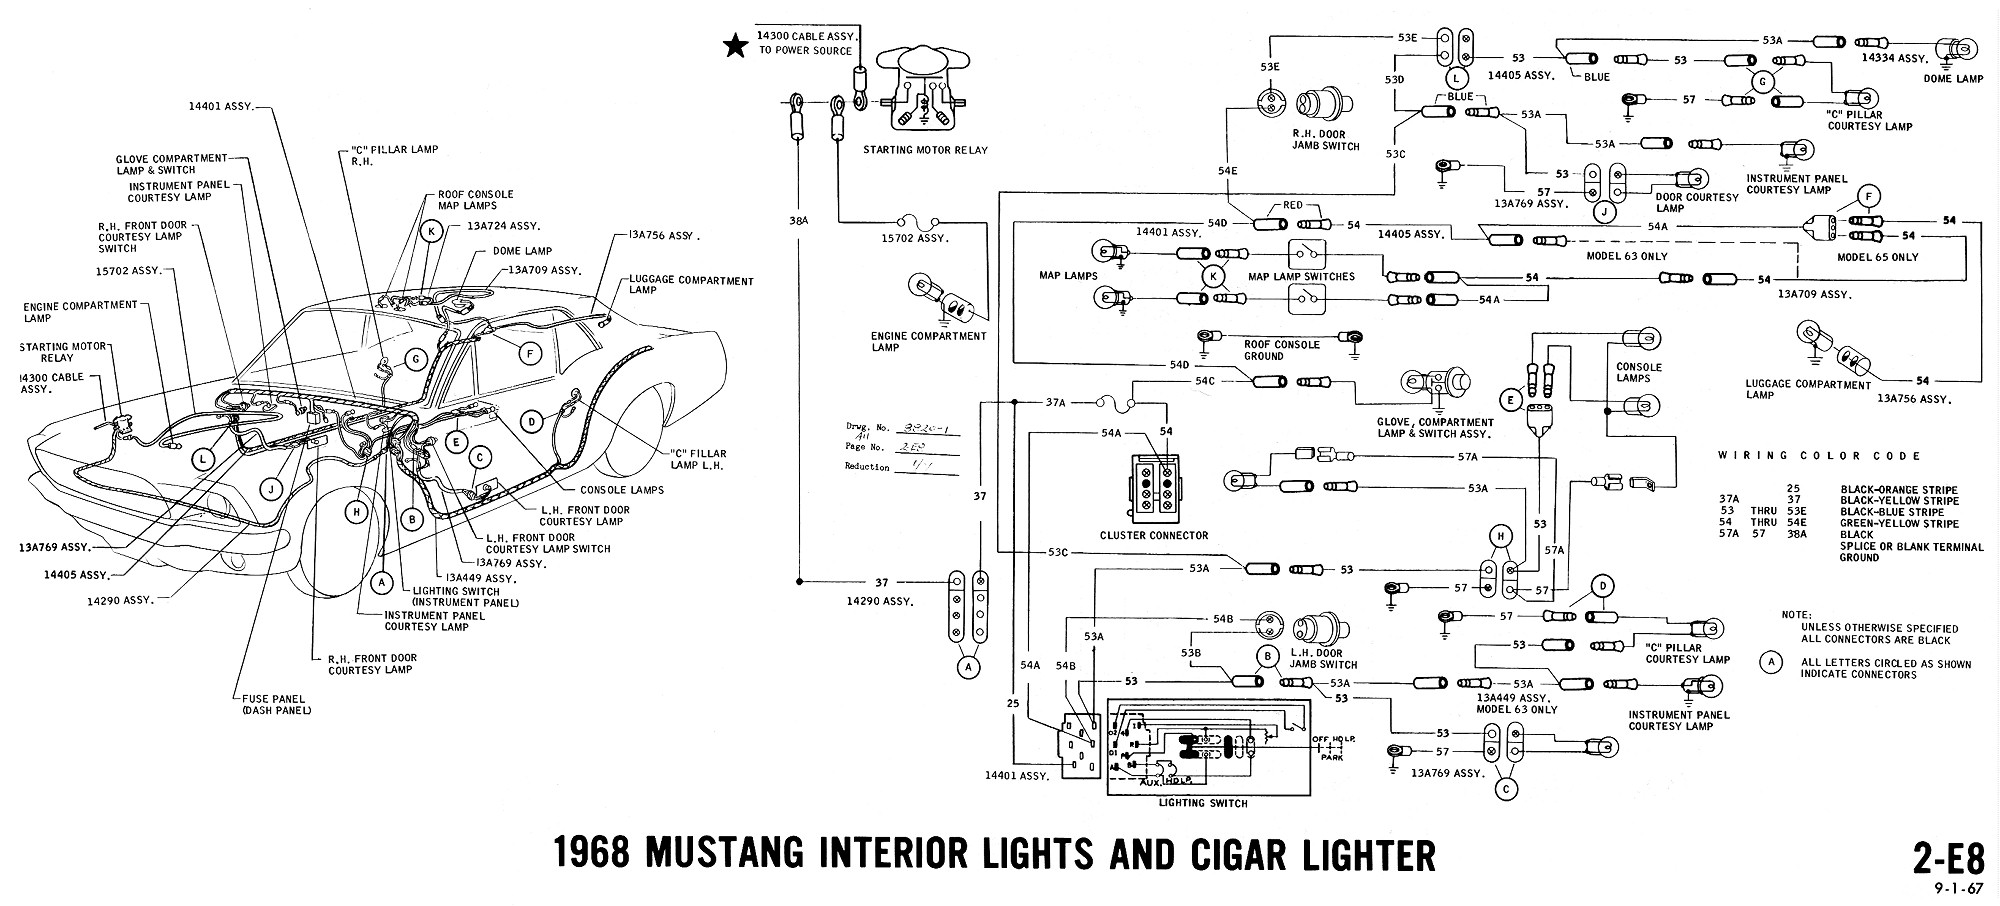 1968 Mustang Wiring Diagram Vacuum Schematics on wiringdiagrams